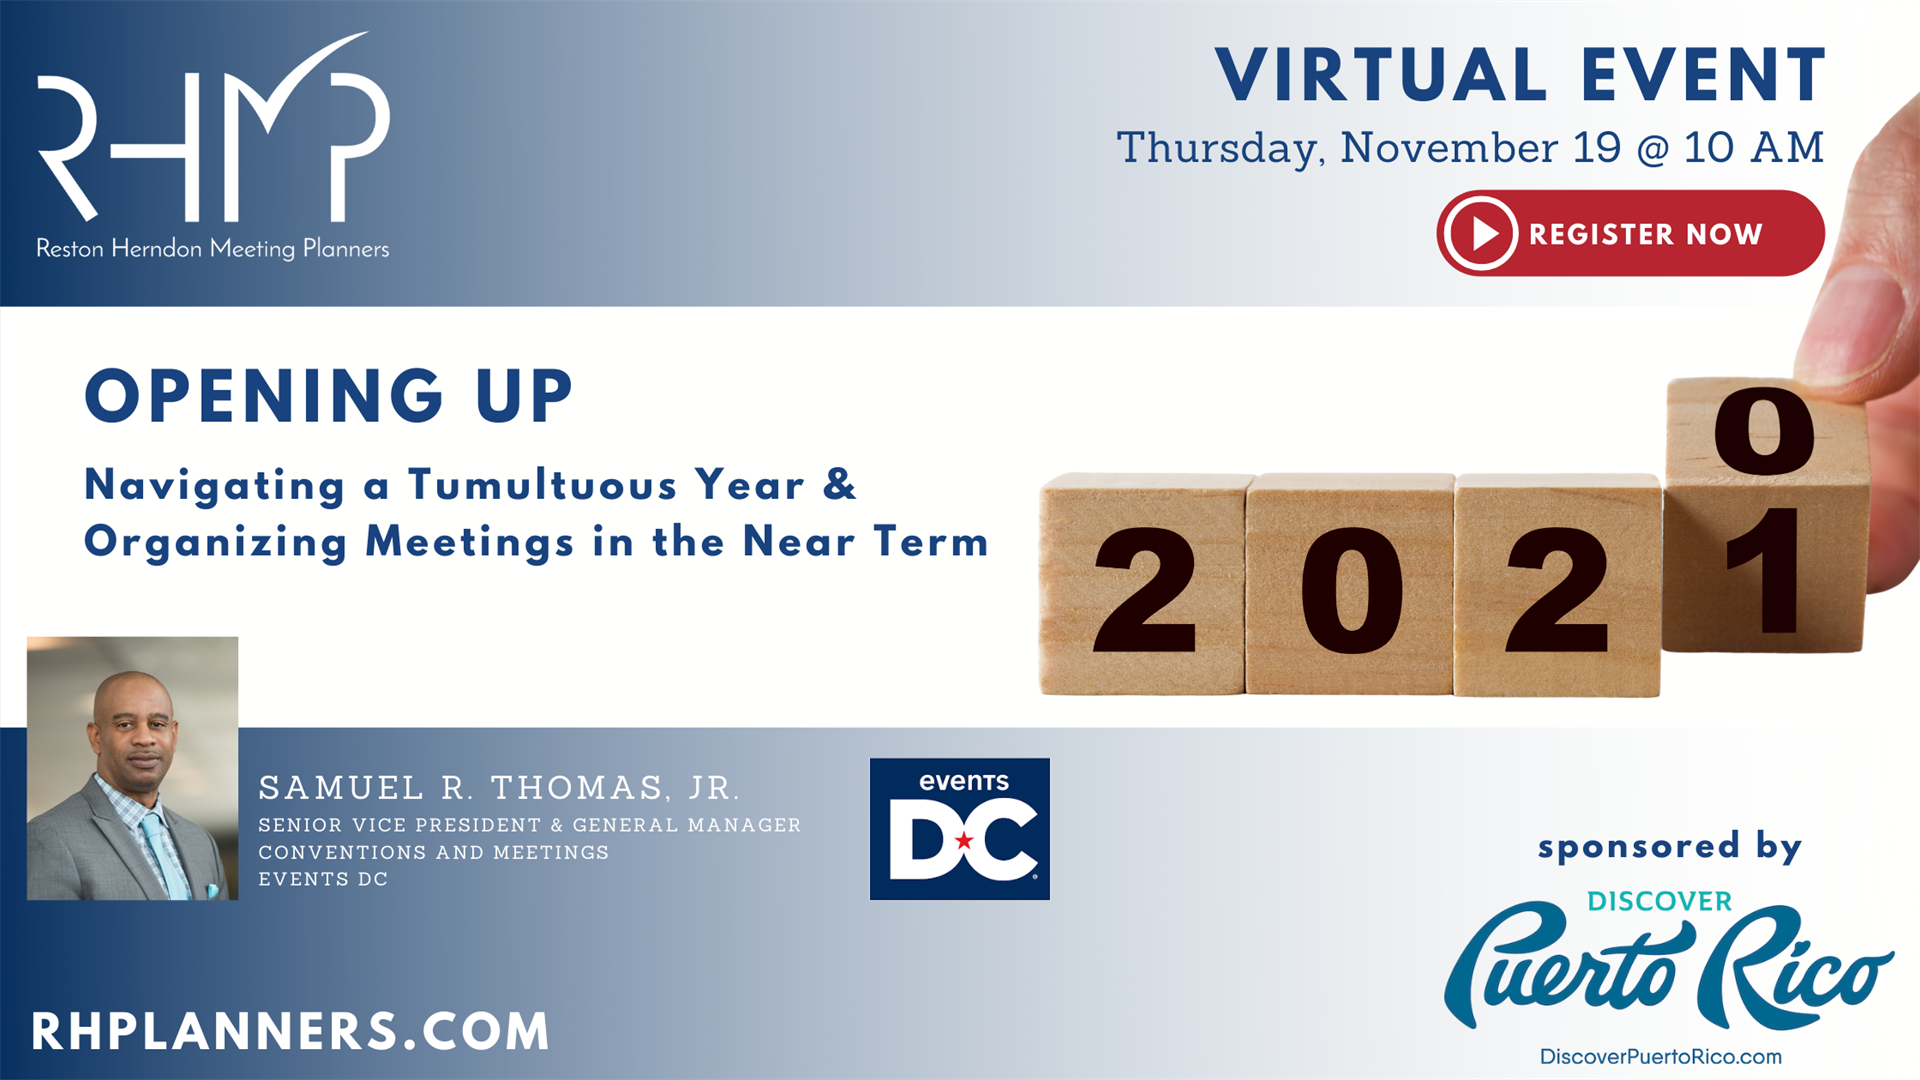 Register Now: 11/19 Virtual Session: Navigating a Tumultuous Year & Organizing Meetings in the Near Term